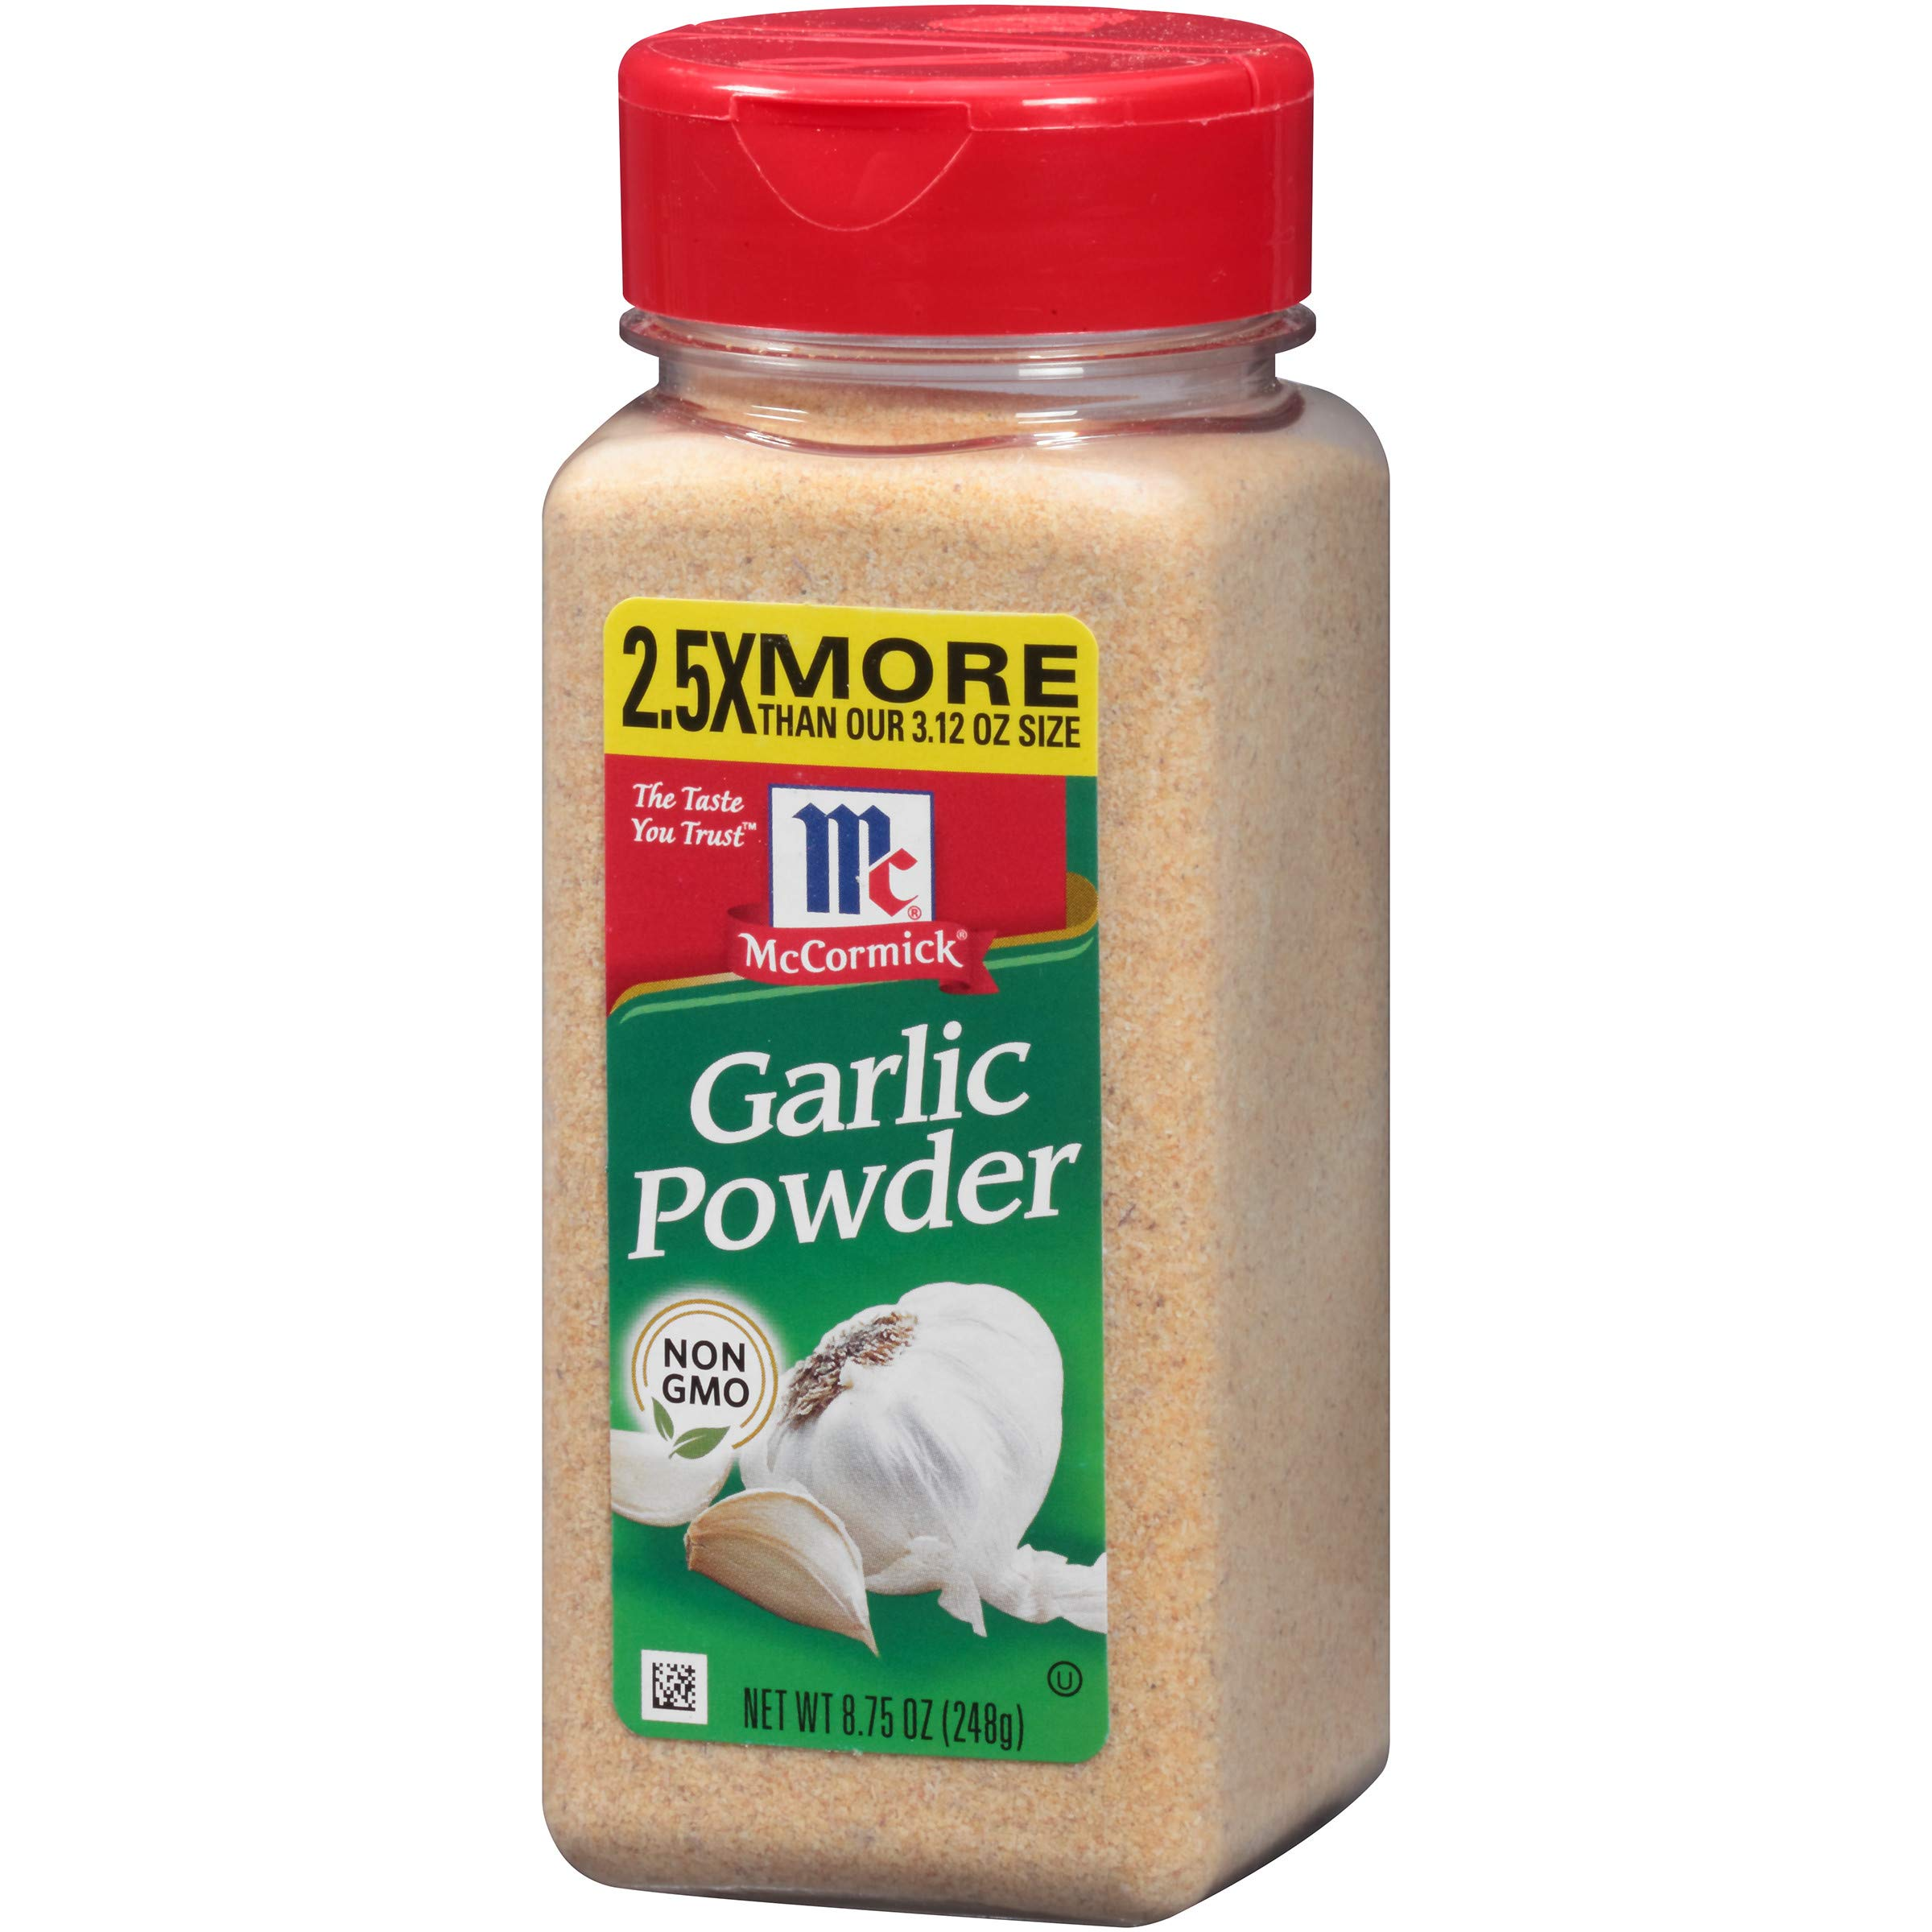 McCormick Garlic Powder, 8.75 oz